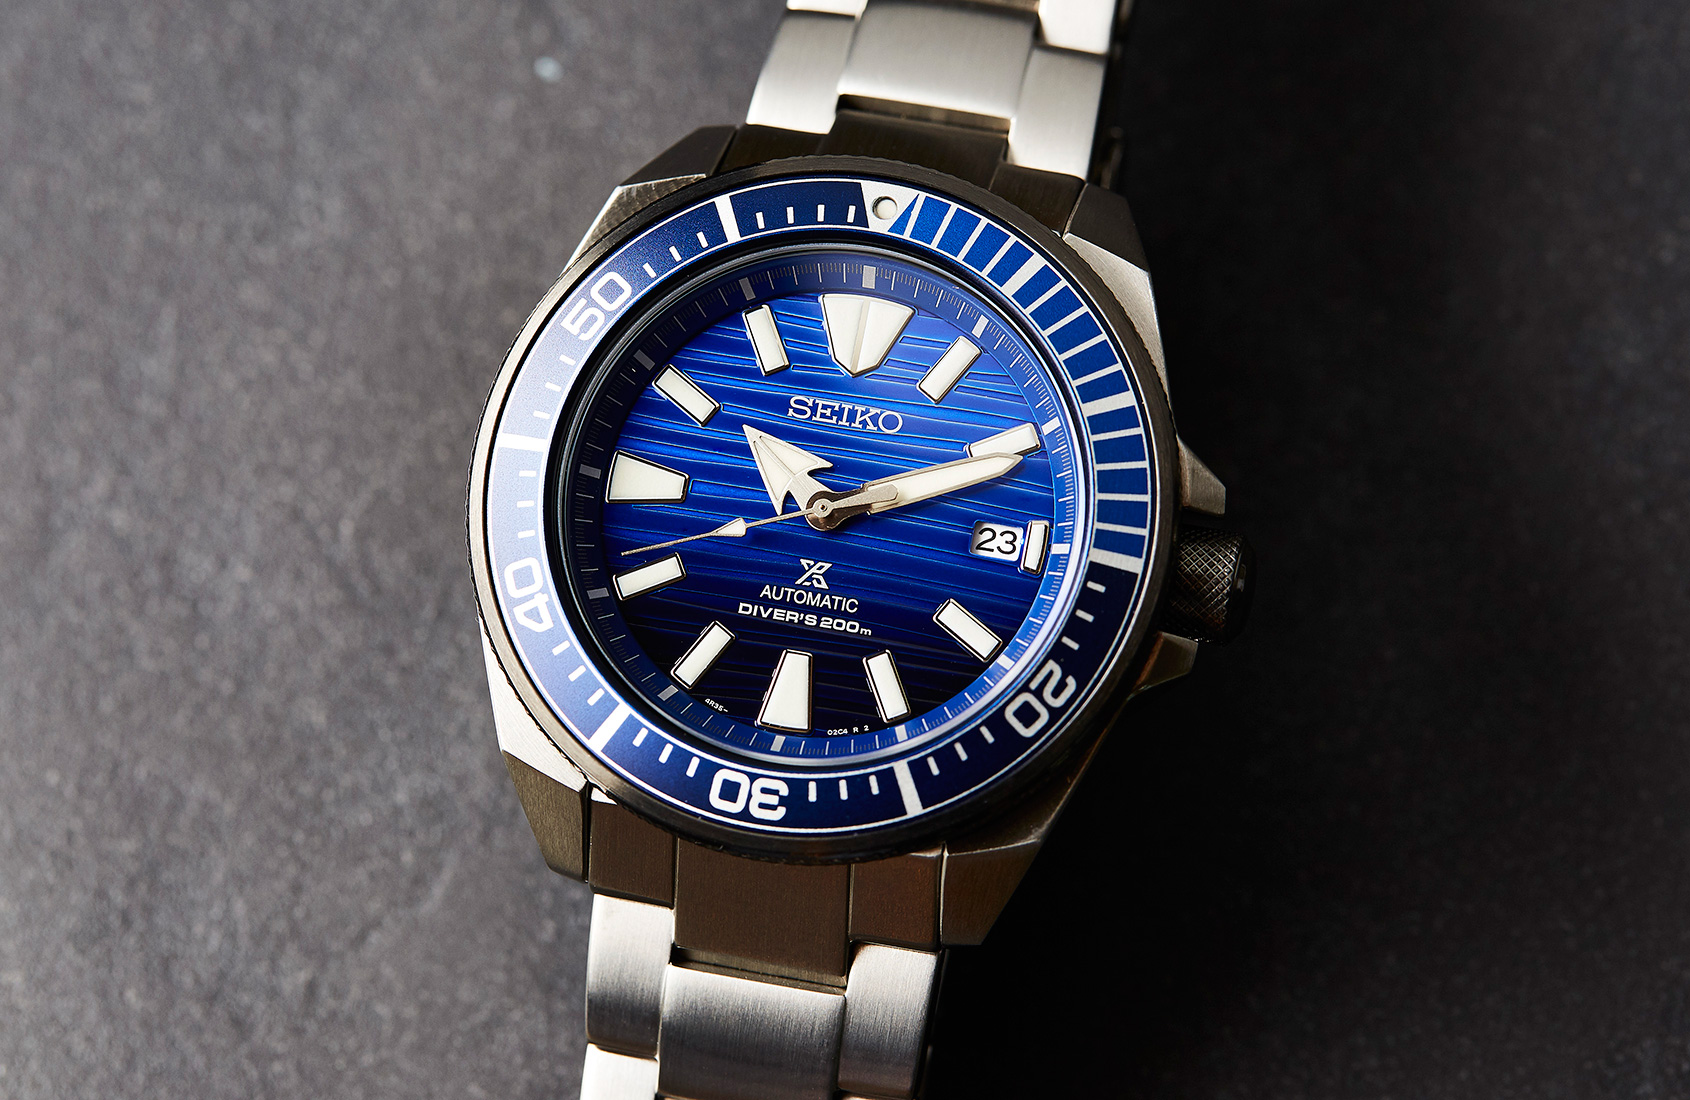 Battle for the blue with the Seiko Samurai 'Save The Ocean' SRPC93K